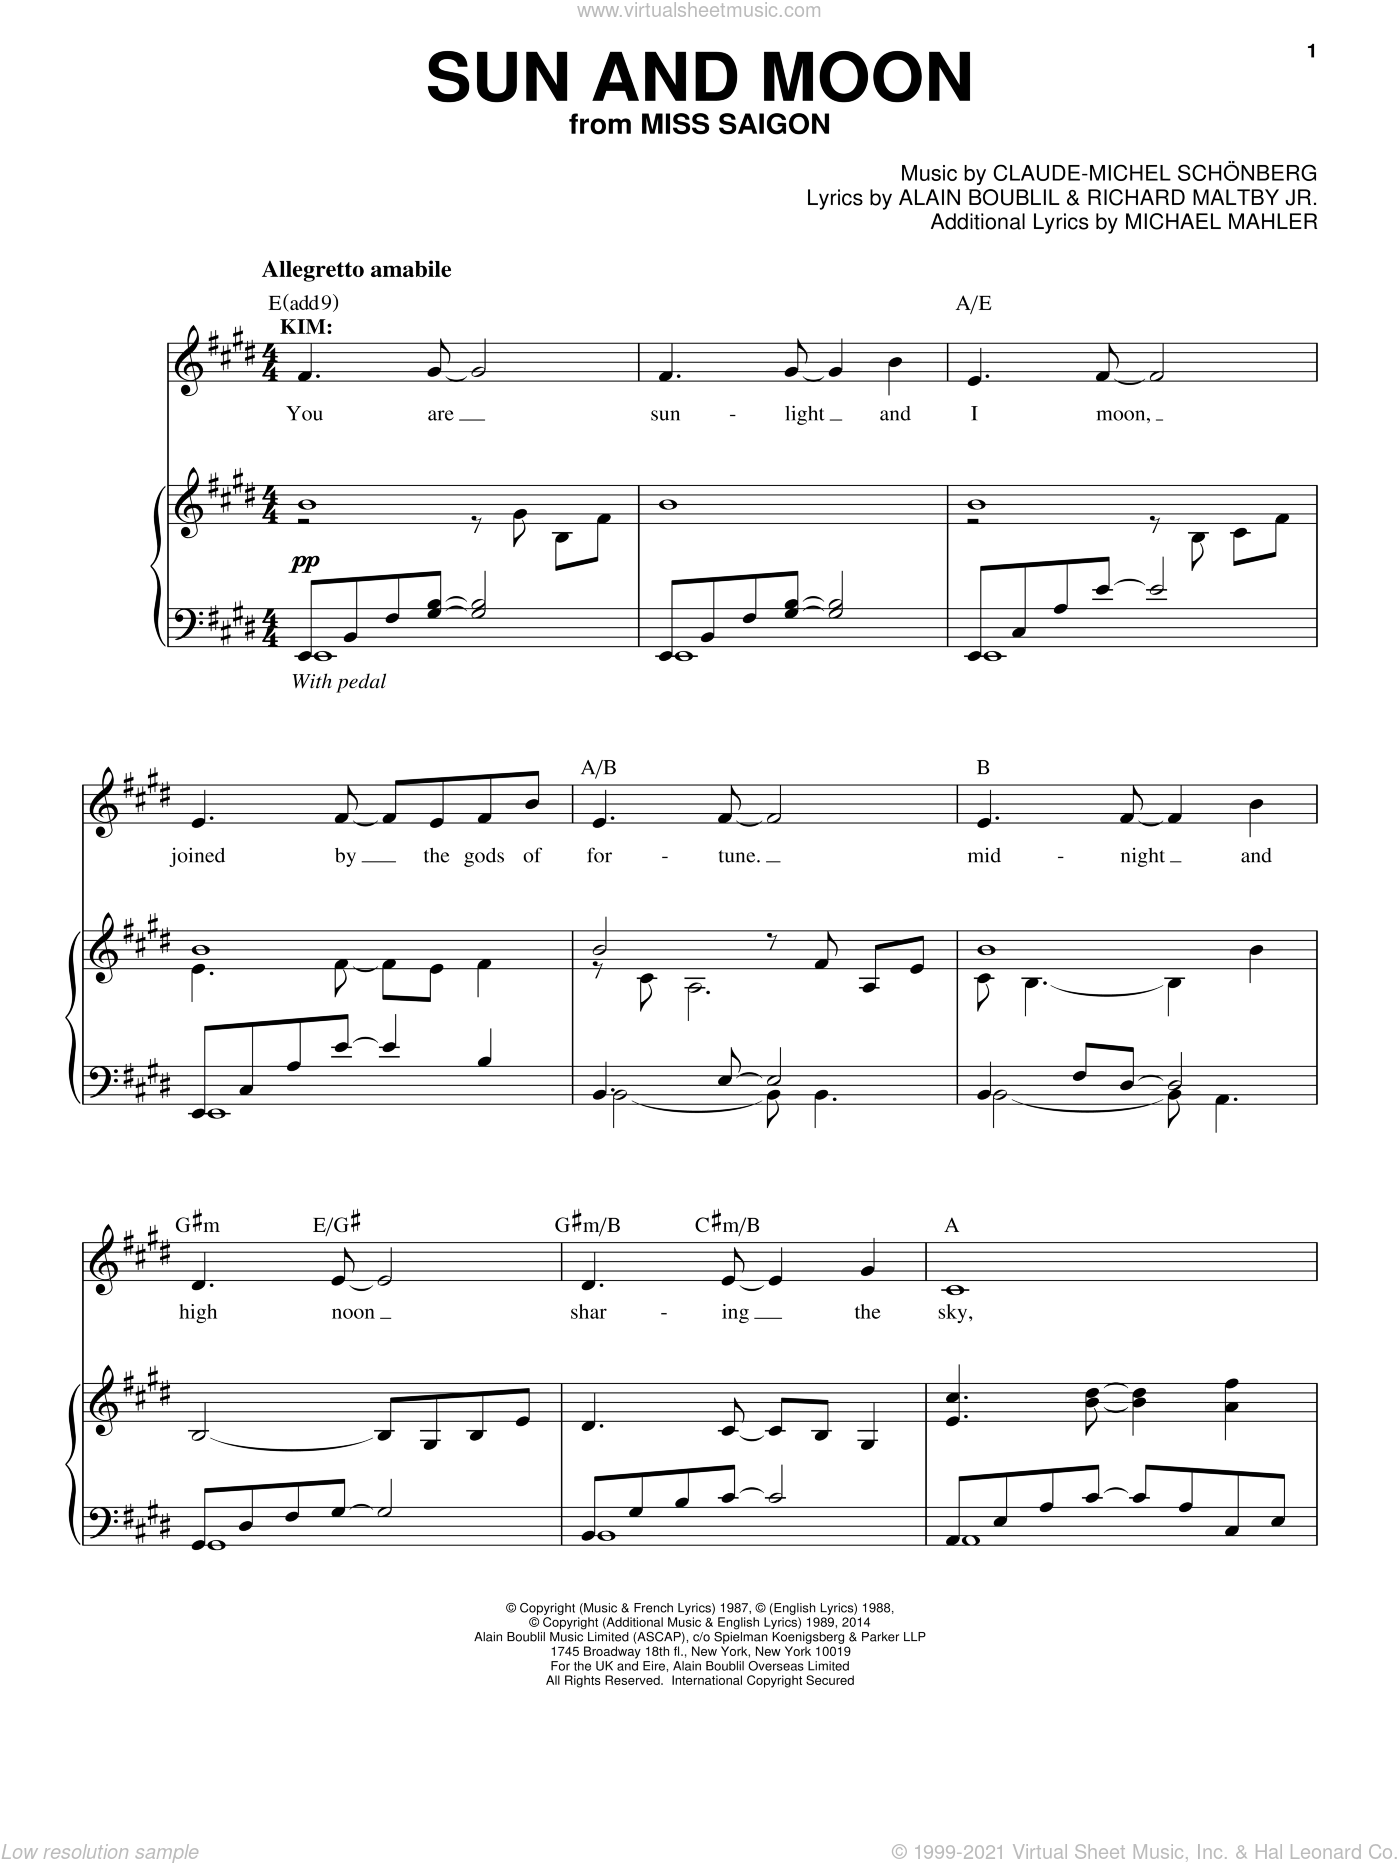 Sun And Moon sheet music for voice and piano by Alain Boublil, Claude-Michel Schonberg, Claude-Michel Schonberg, Michael Mahler and Richard Maltby, Jr., intermediate skill level